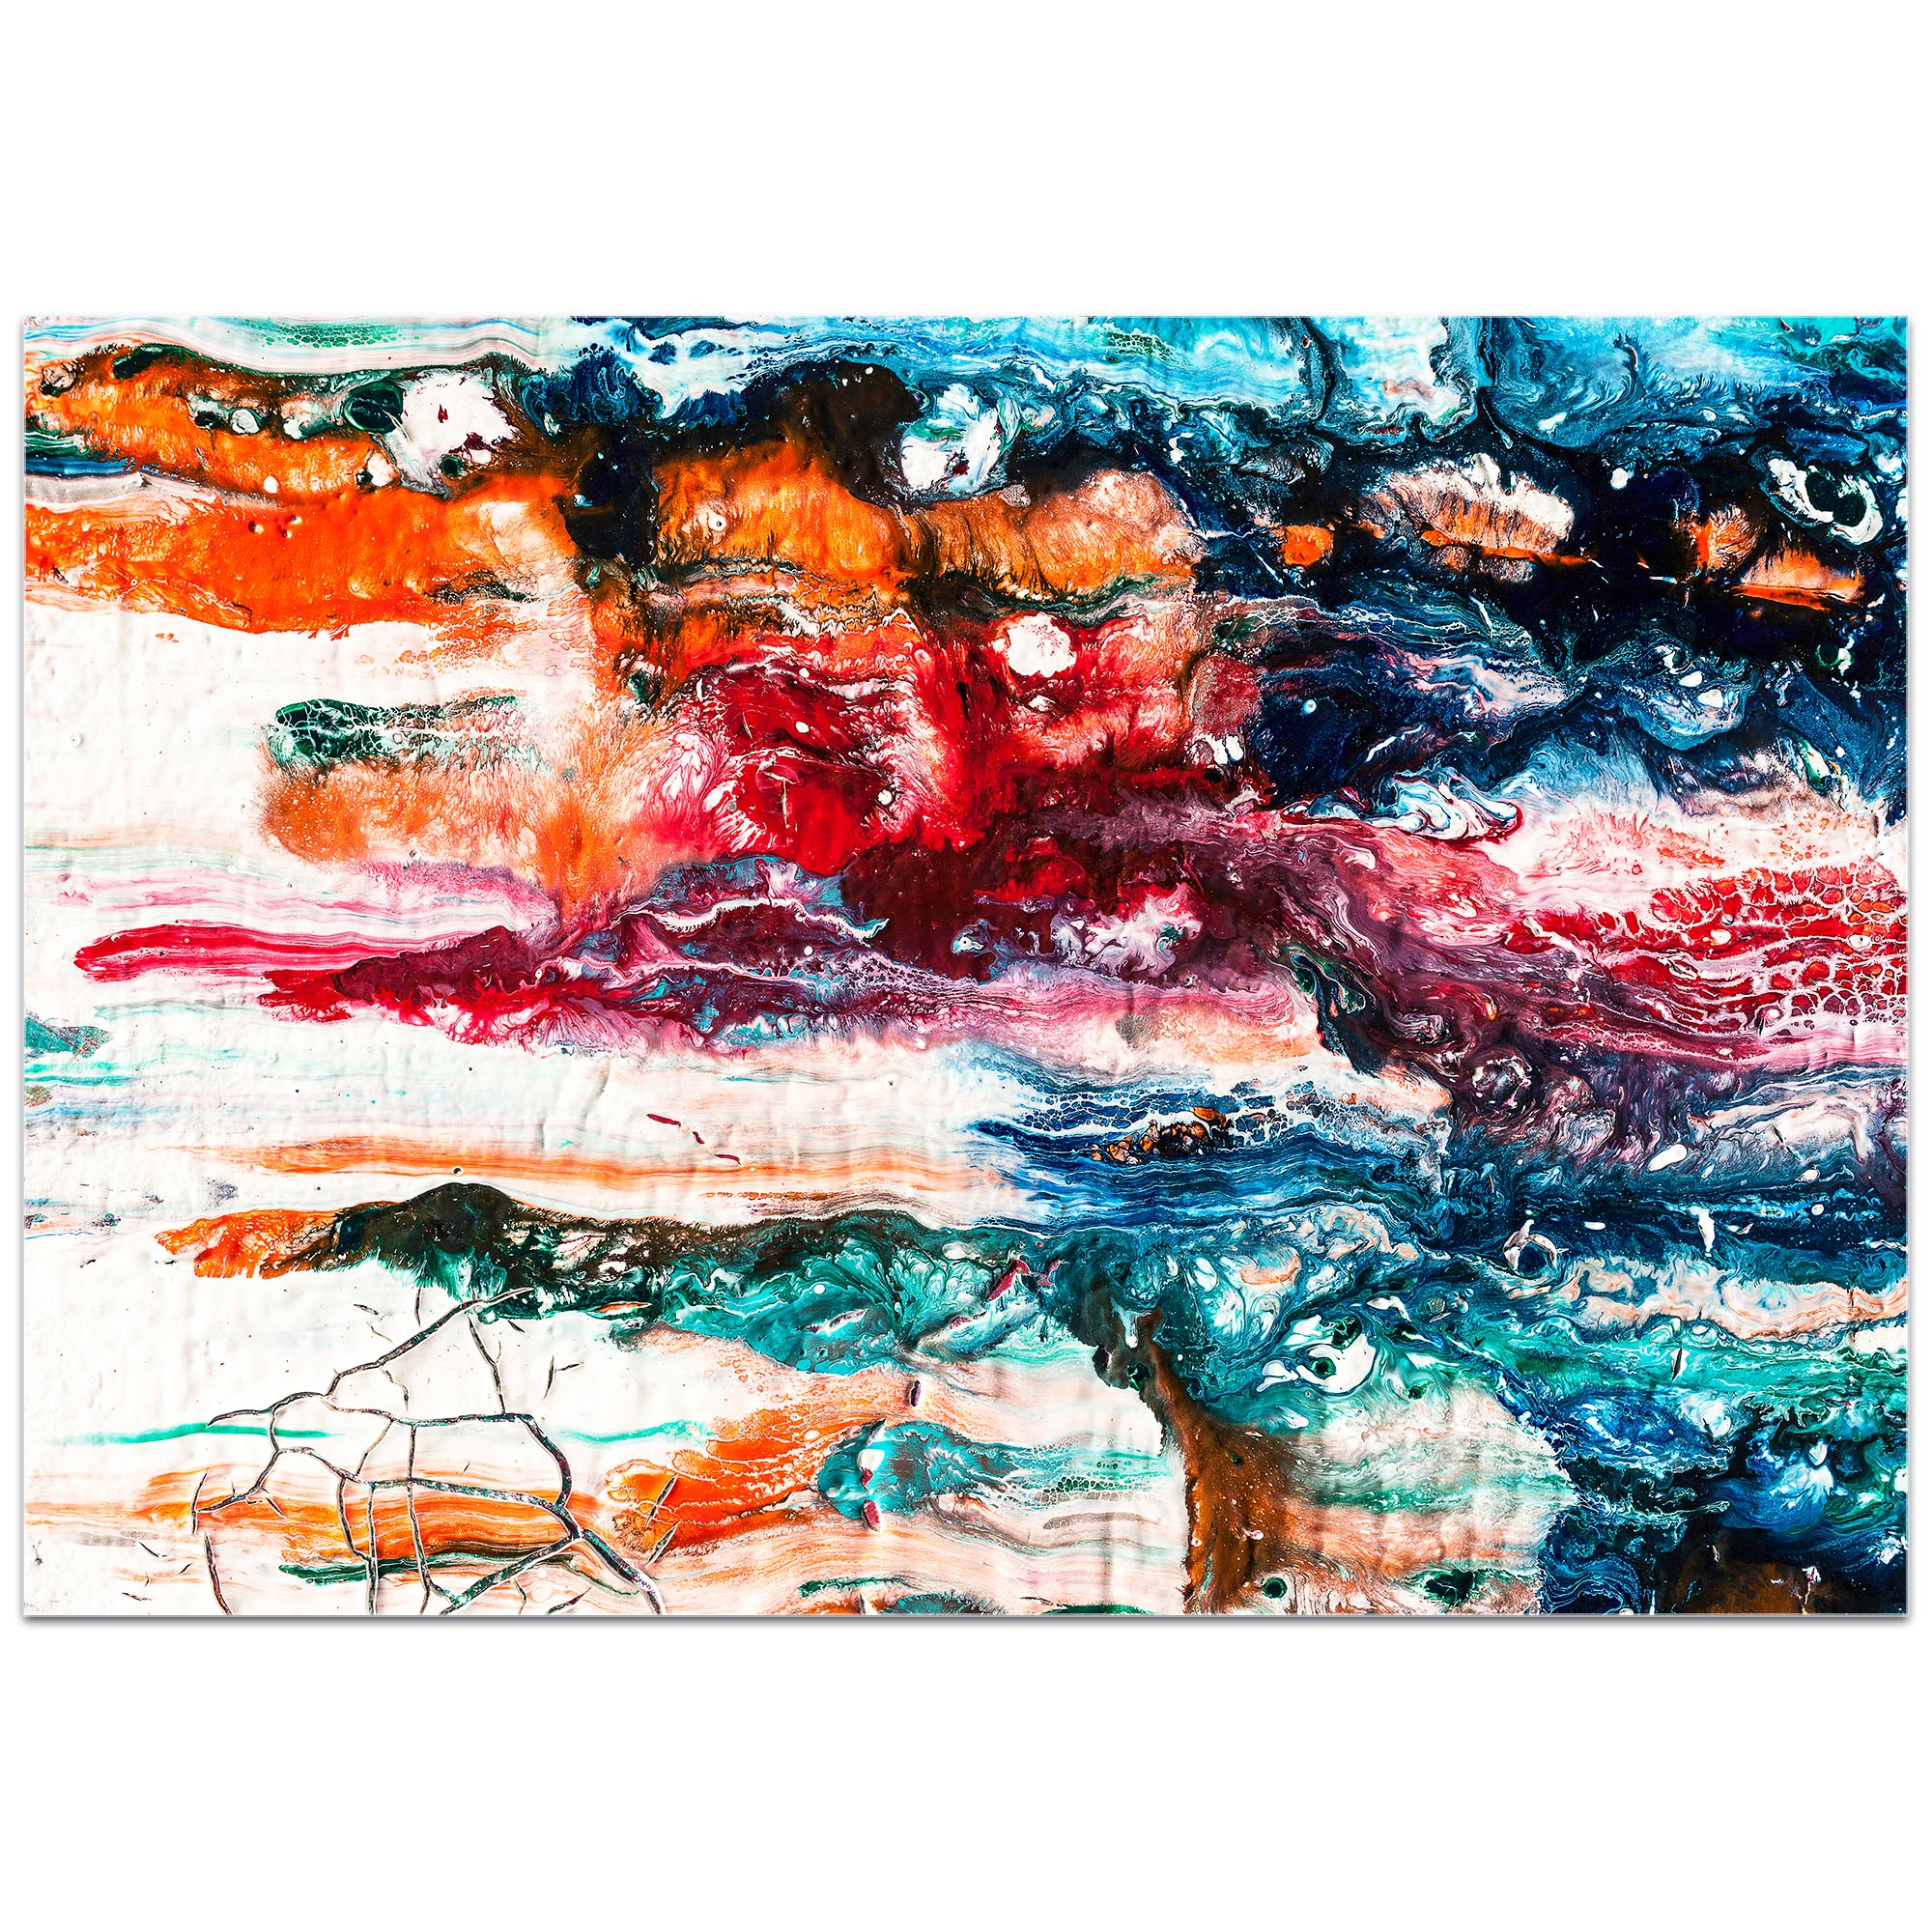 Abstract Wall Art 'Sunset On Her Breath 3' - Colorful Urban Decor on Metal or Plexiglass - Image 2